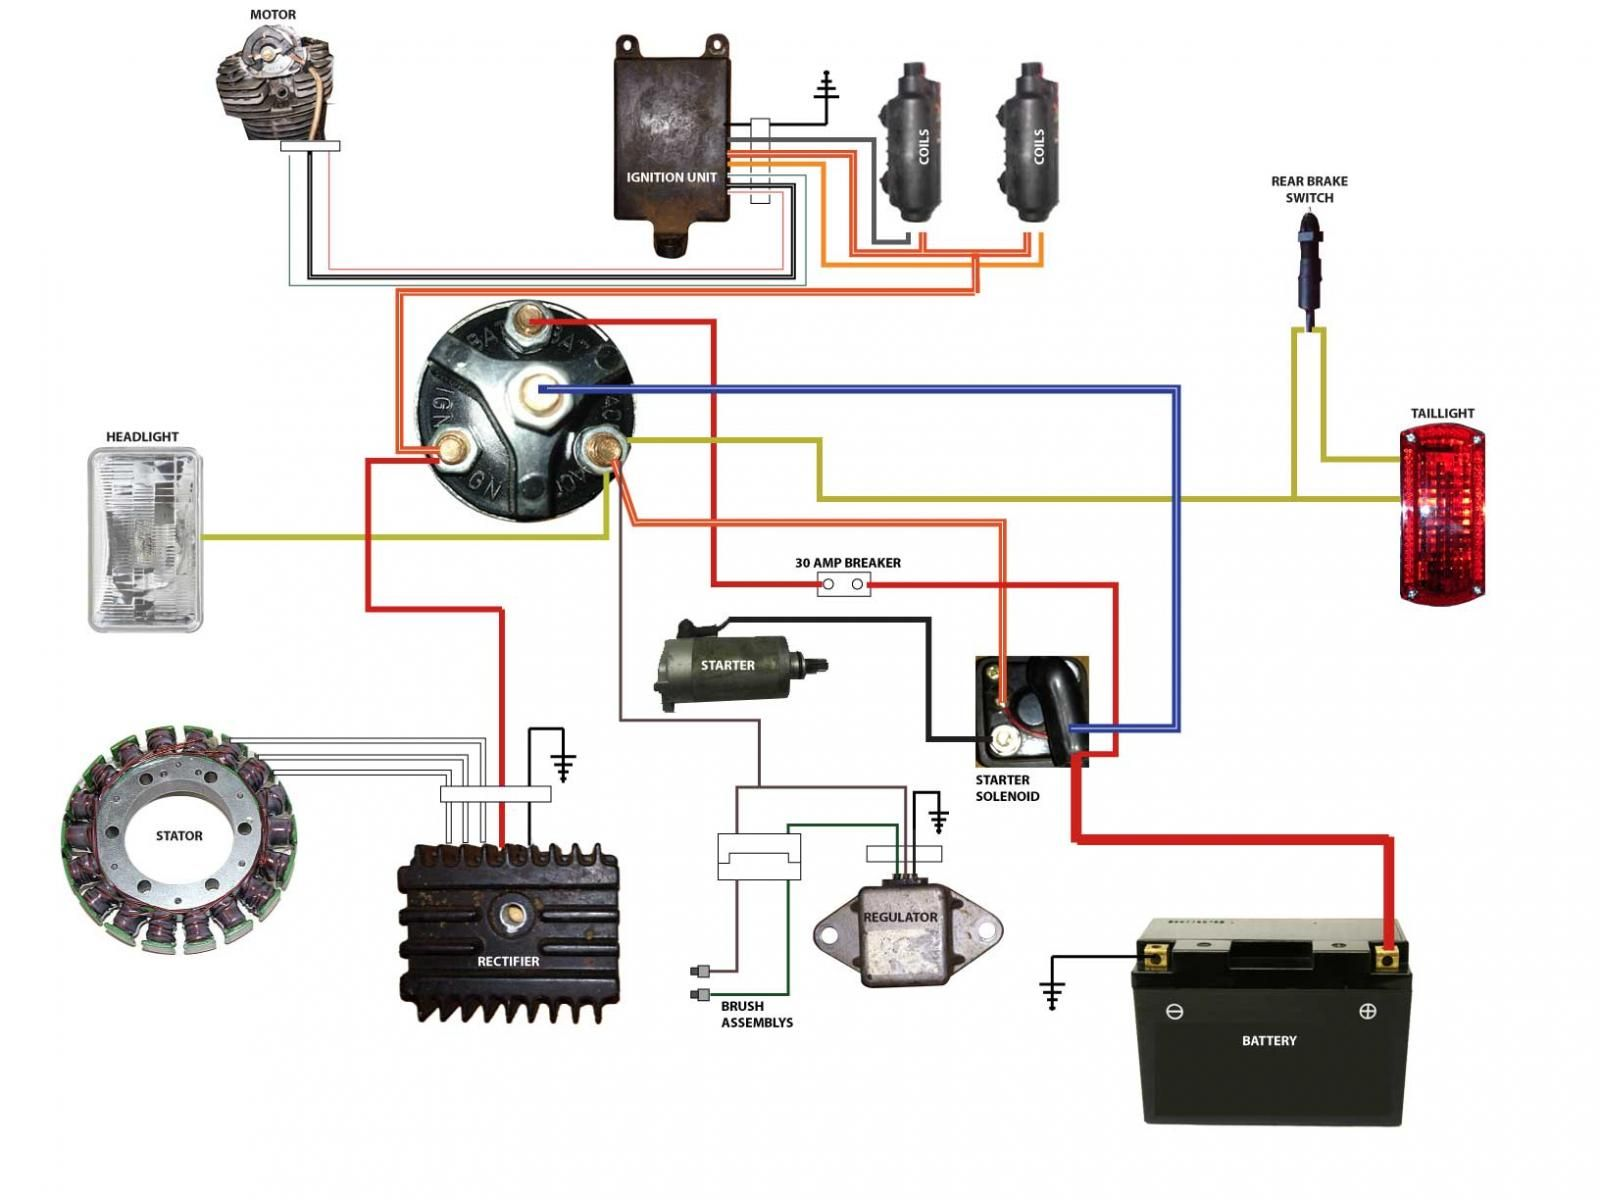 d72b6b9978ded4378b16620a38821410 simplified wiring diagram for xs400 cafe motorcycle wiring  at mr168.co